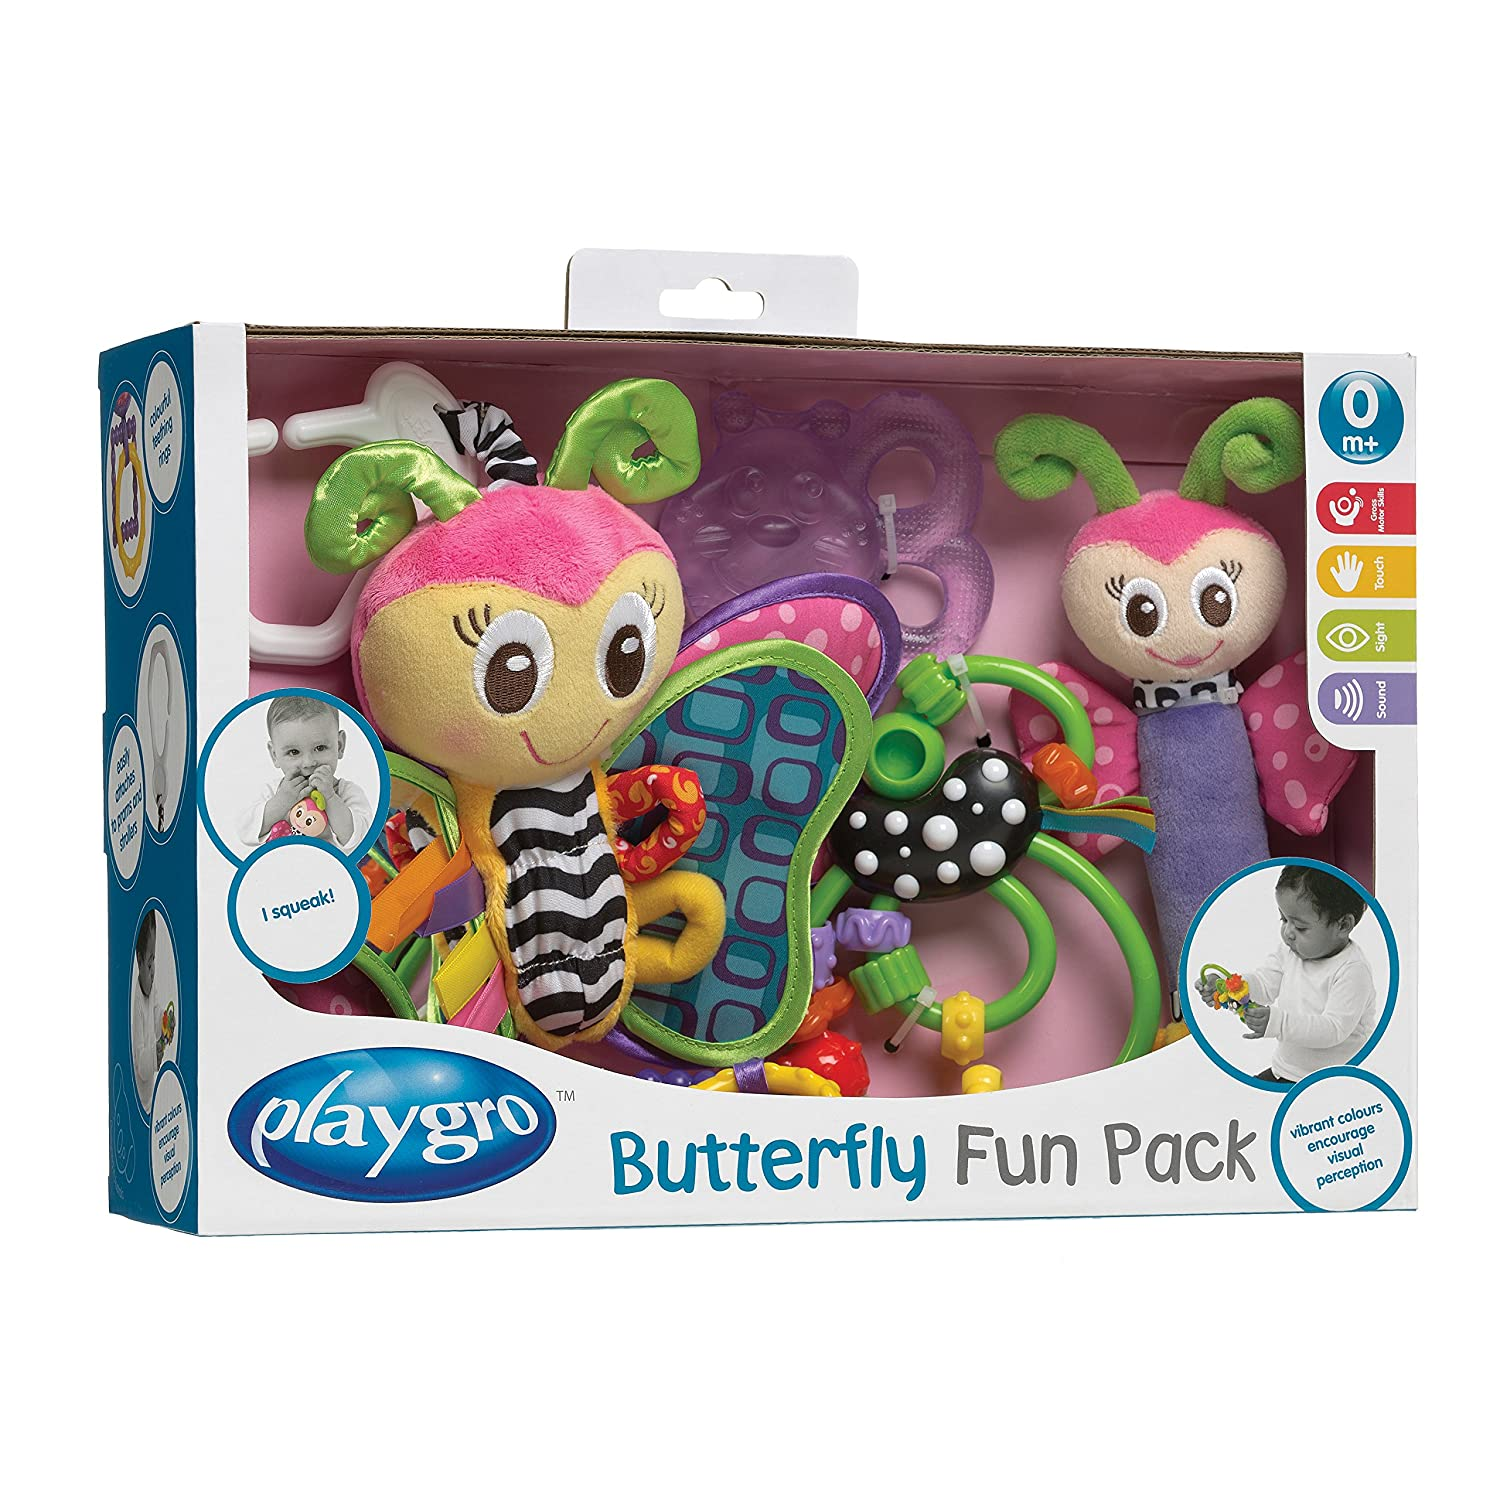 Playgro Butterfly Fun Pack by Playgro   B00H57F6WI